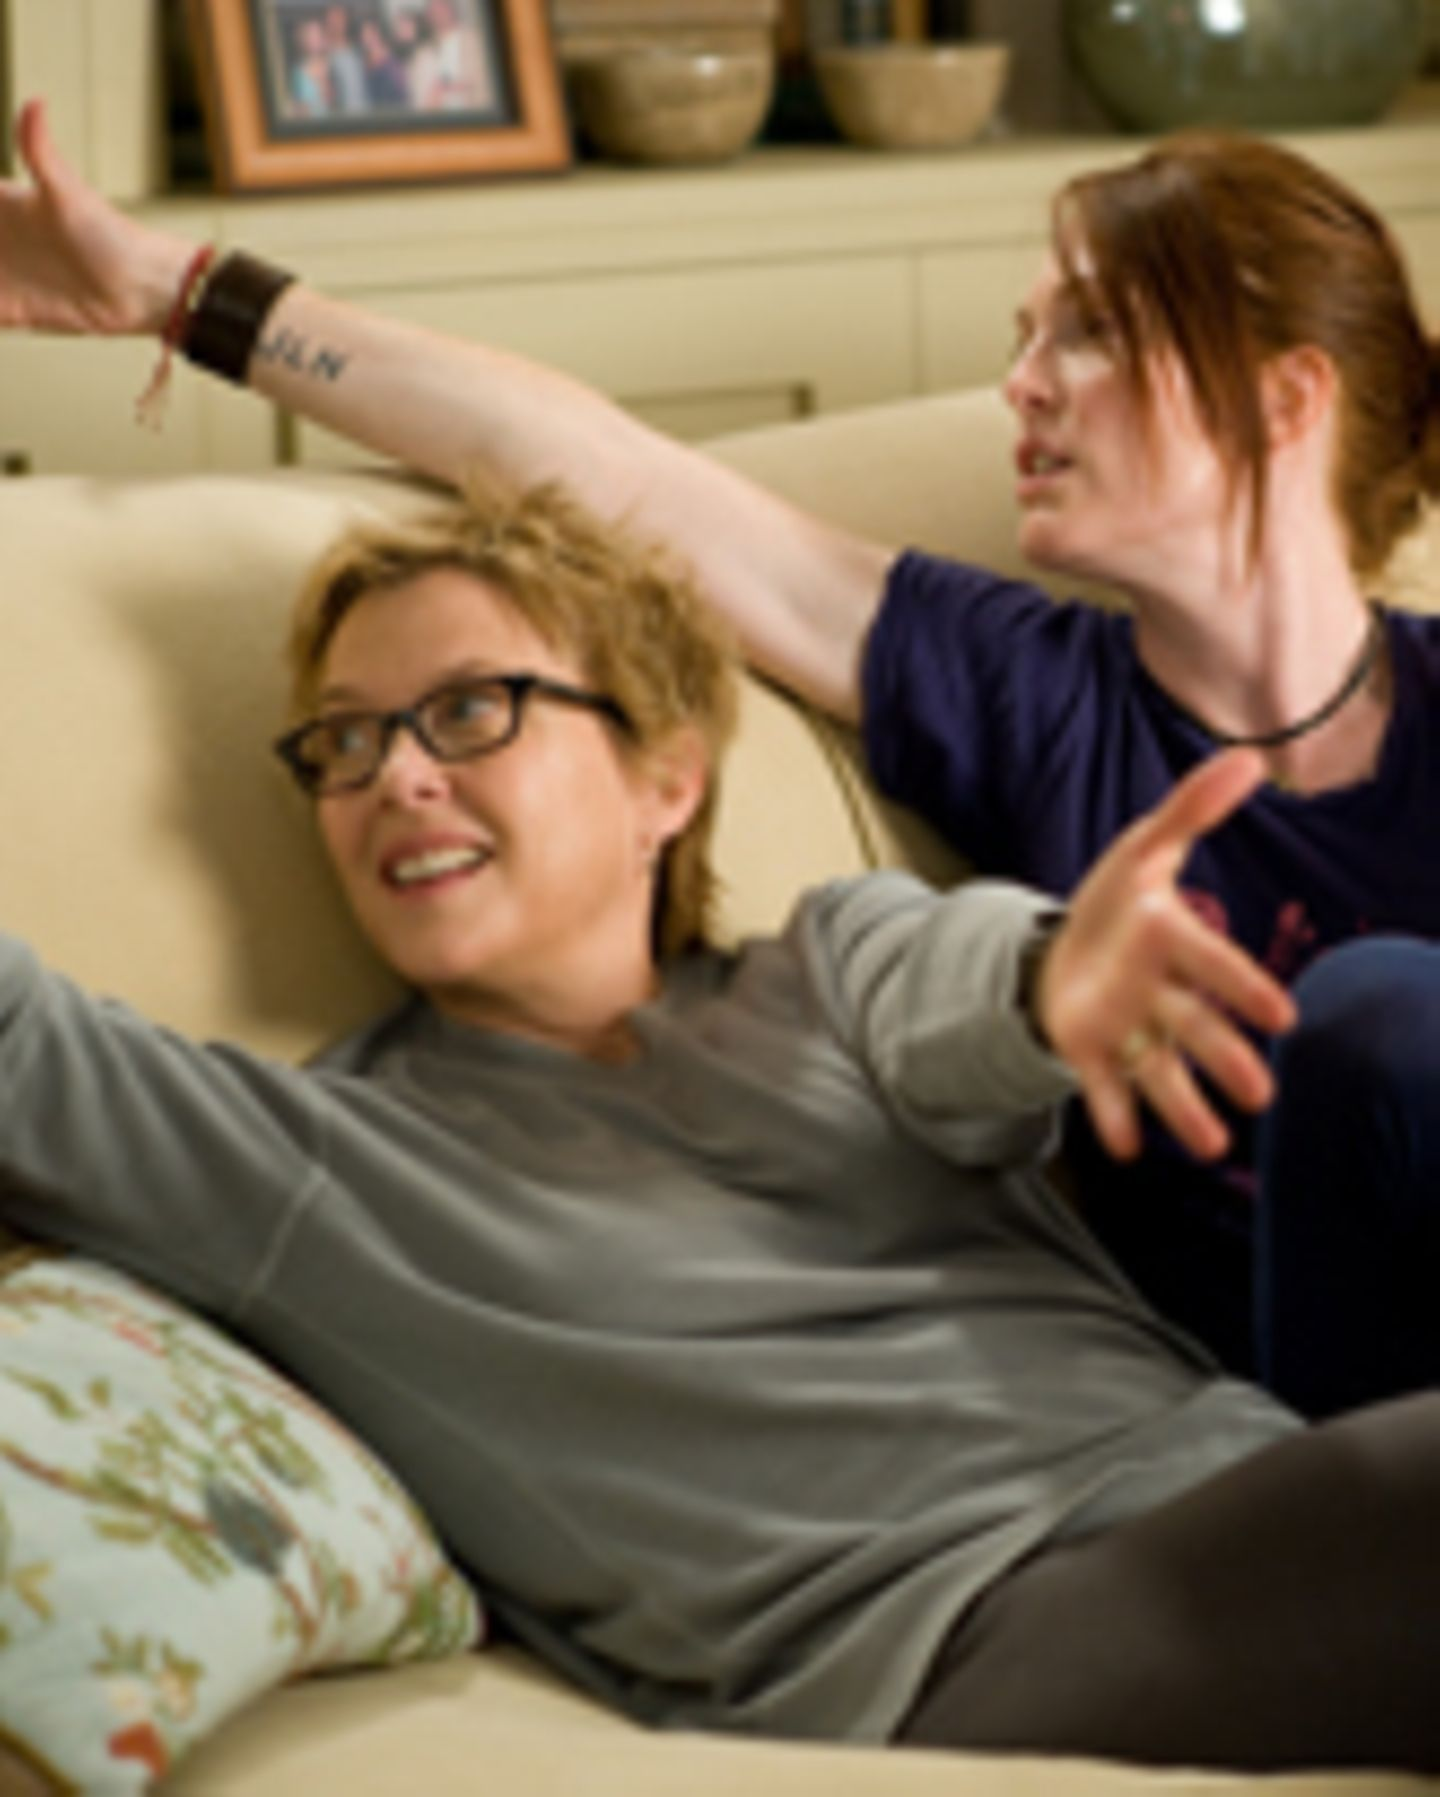 """Annette Bening, Julianne Moore in """"The Kids are all right"""""""